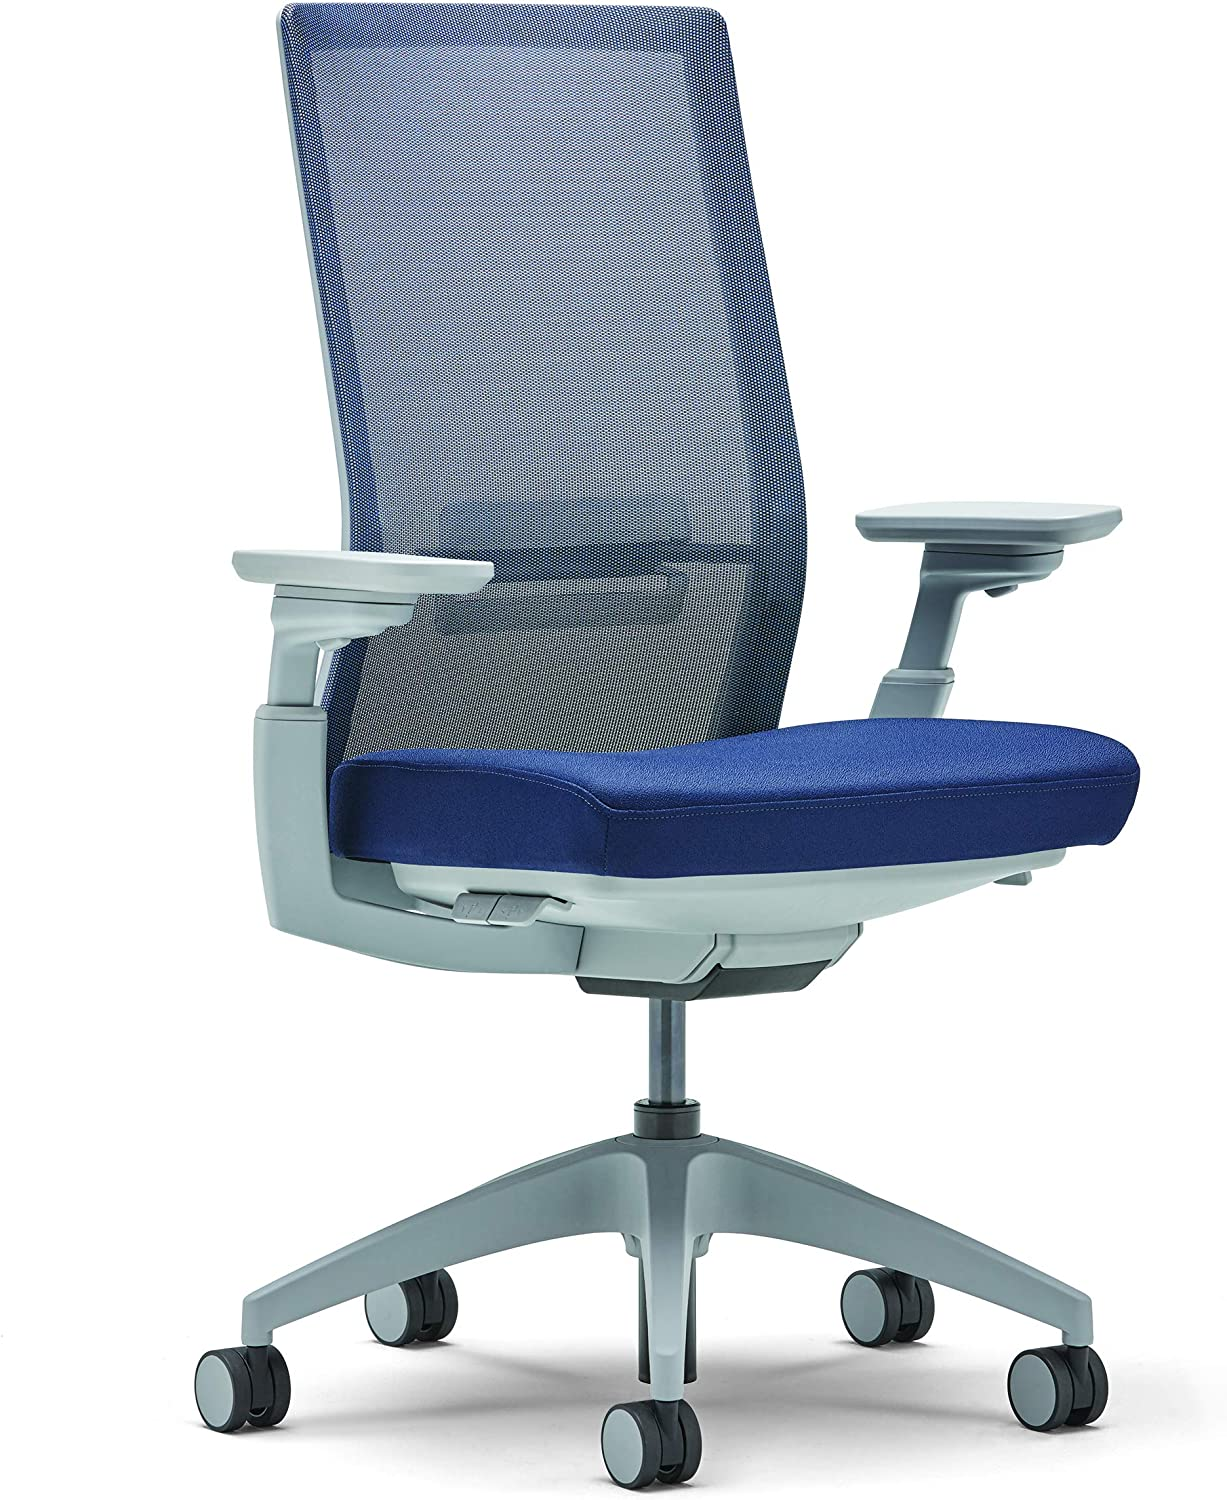 Allsteel Navy Evo Task Chair with Lumbar, Weight-Activated, Mesh High-Back and 4-D Adjustable Arms